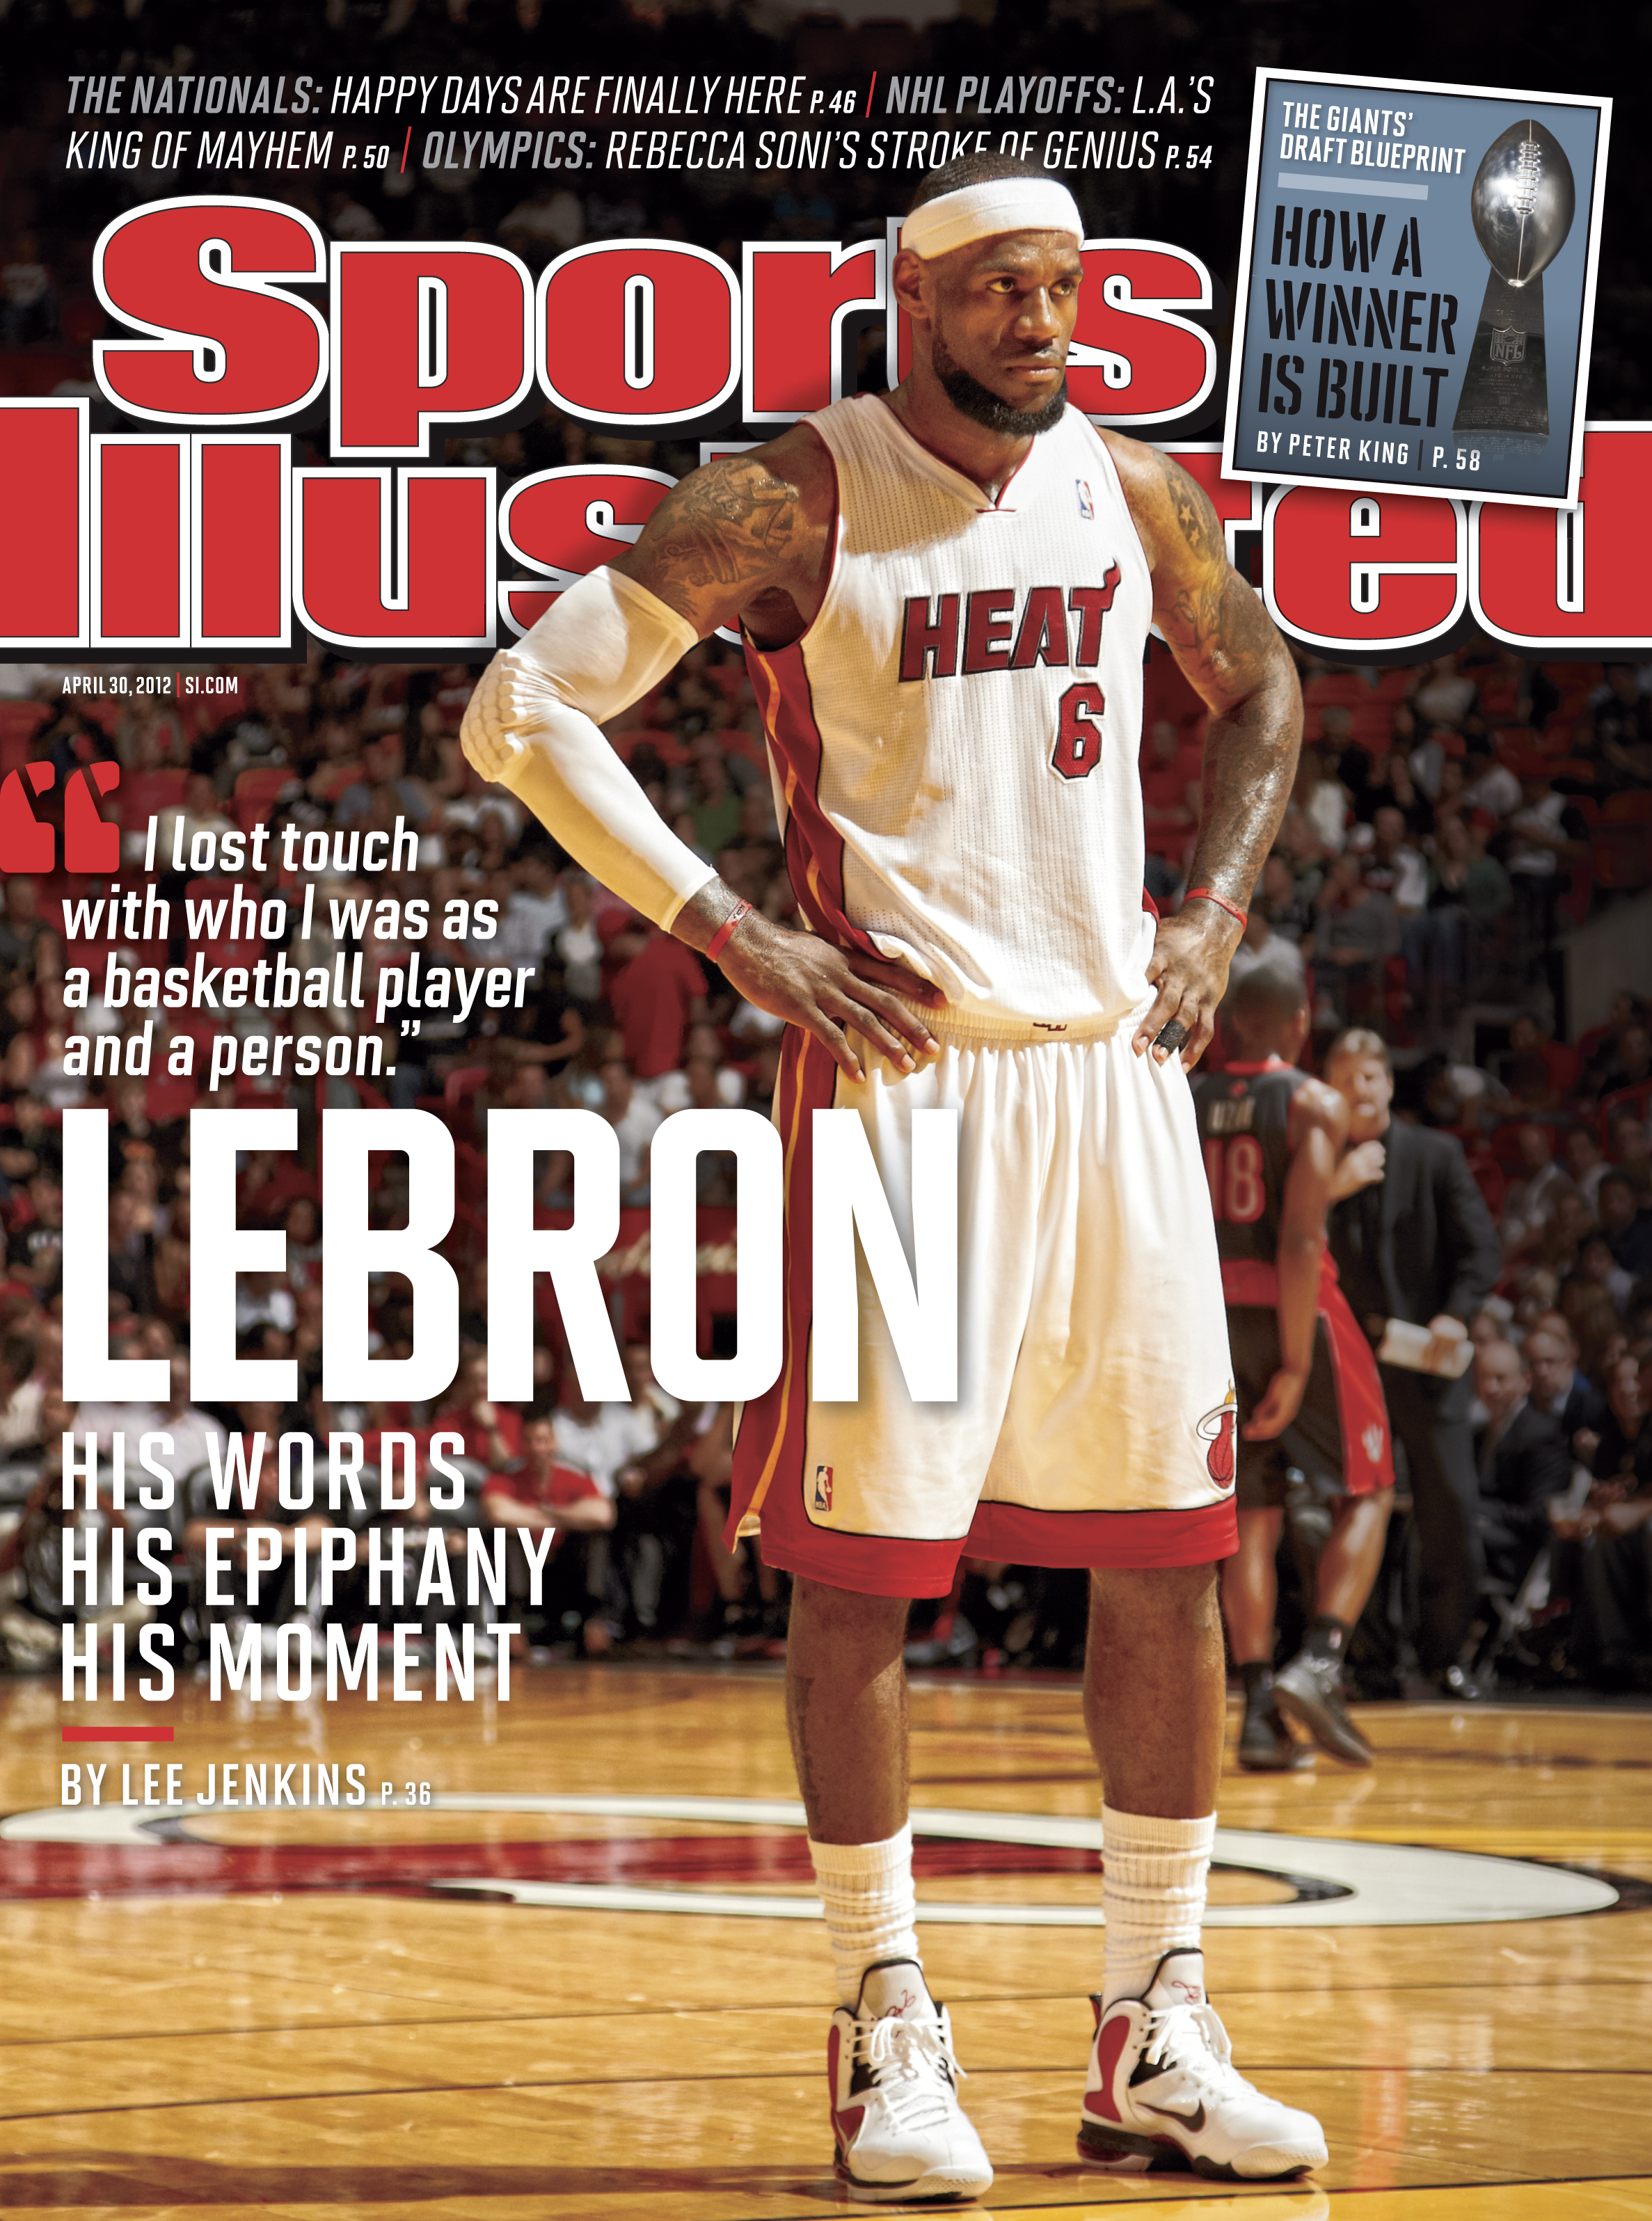 sigroup inside sports illustrated page  lebron